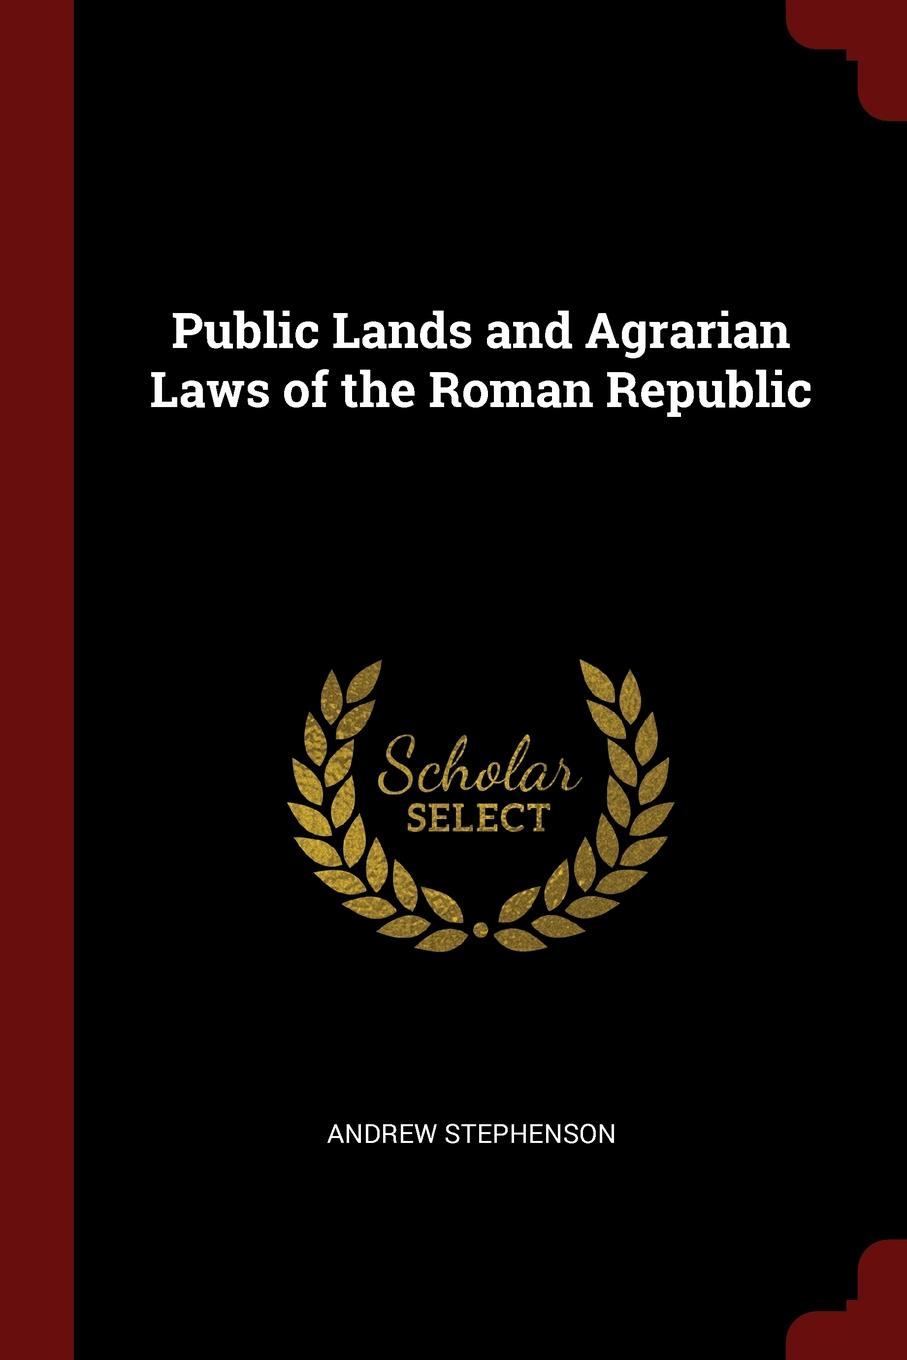 Andrew Stephenson Public Lands and Agrarian Laws of the Roman Republic